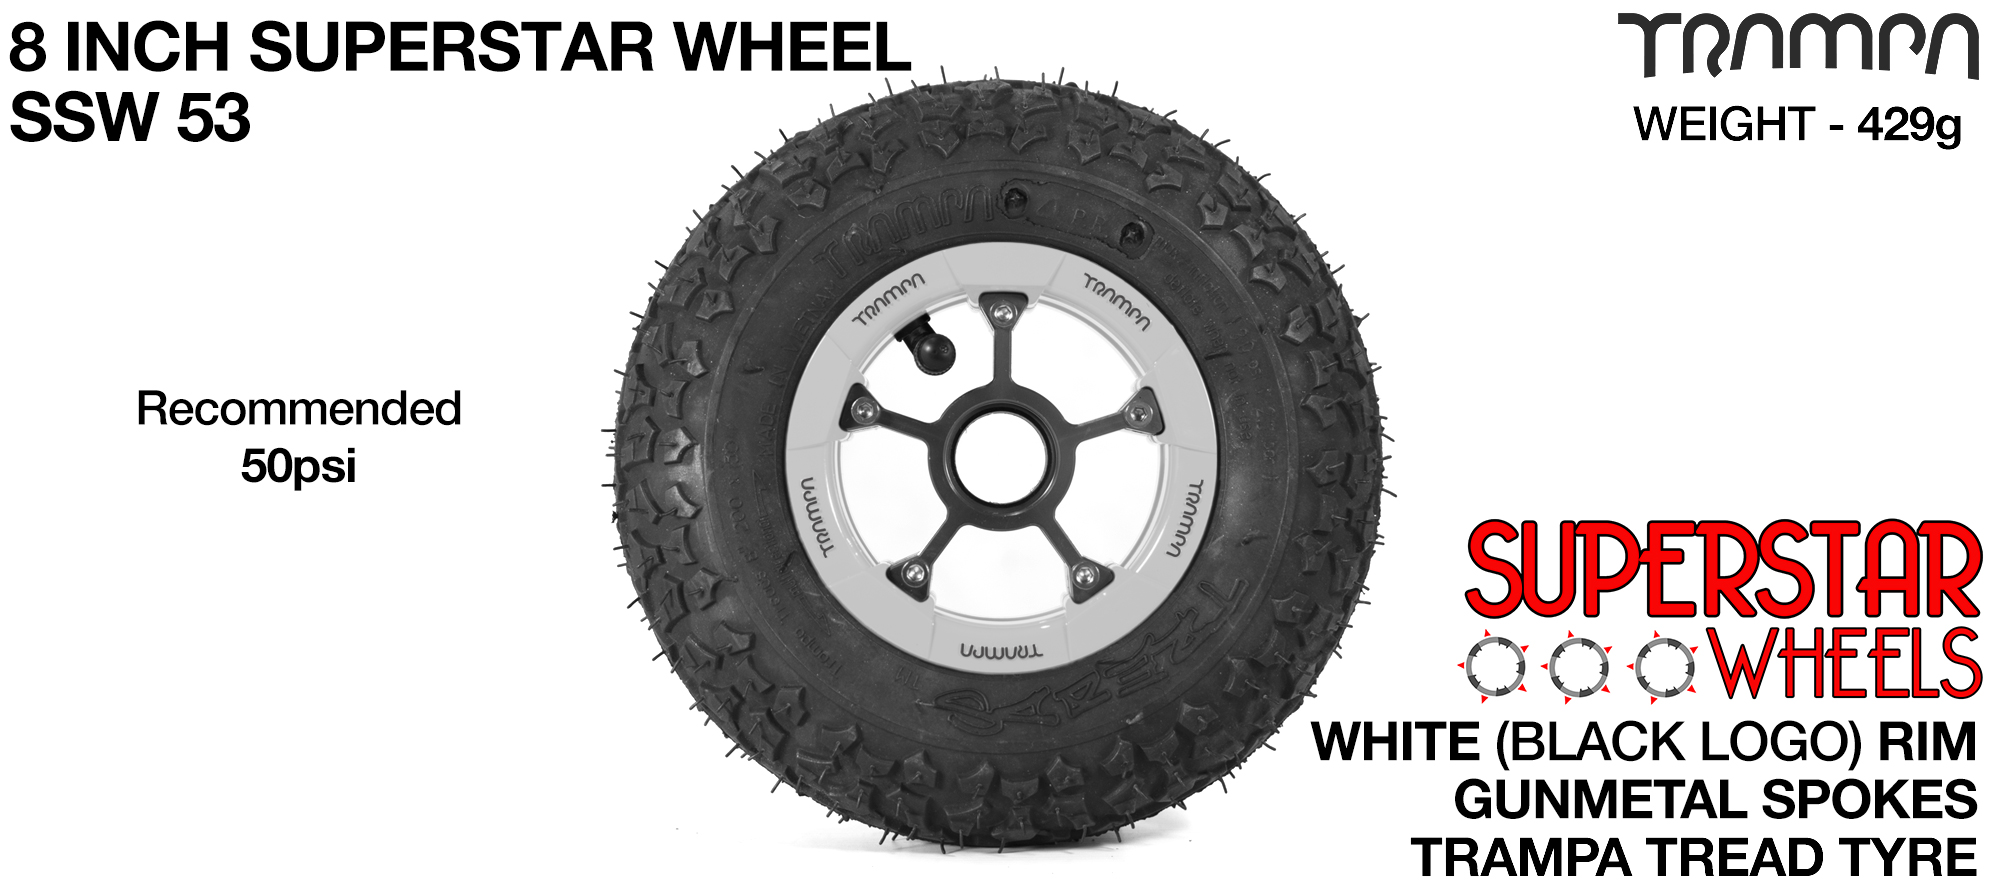 Superstar 8 inch wheel - White Gloss Rim Gunmetal Anodised spokes & TRAMPA TREAD 8 Inch Tyres